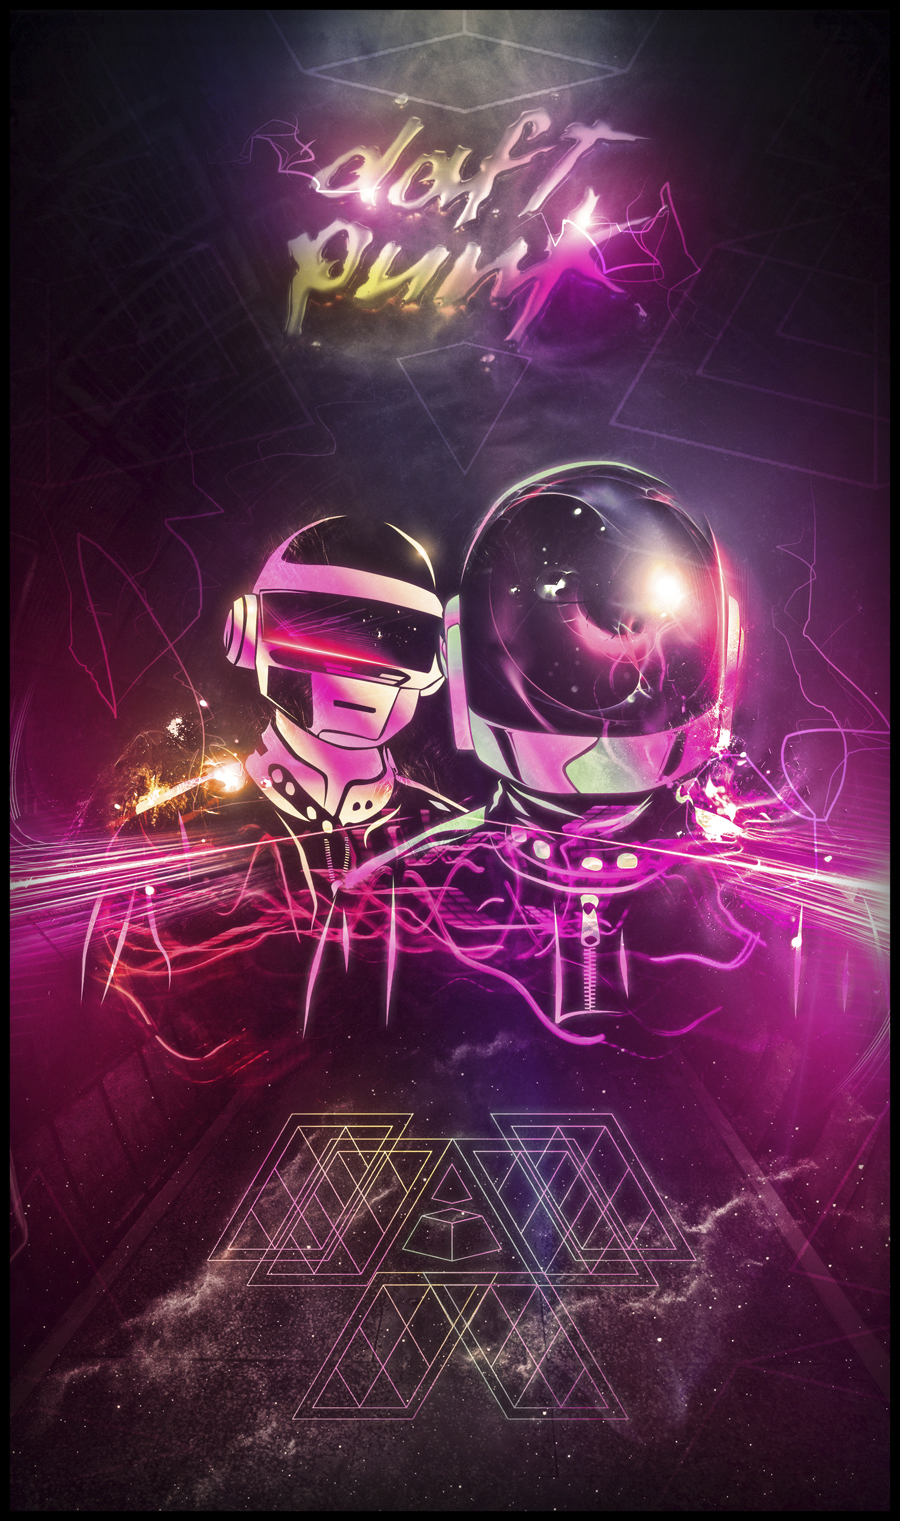 Daft Punk Love by BossLogic